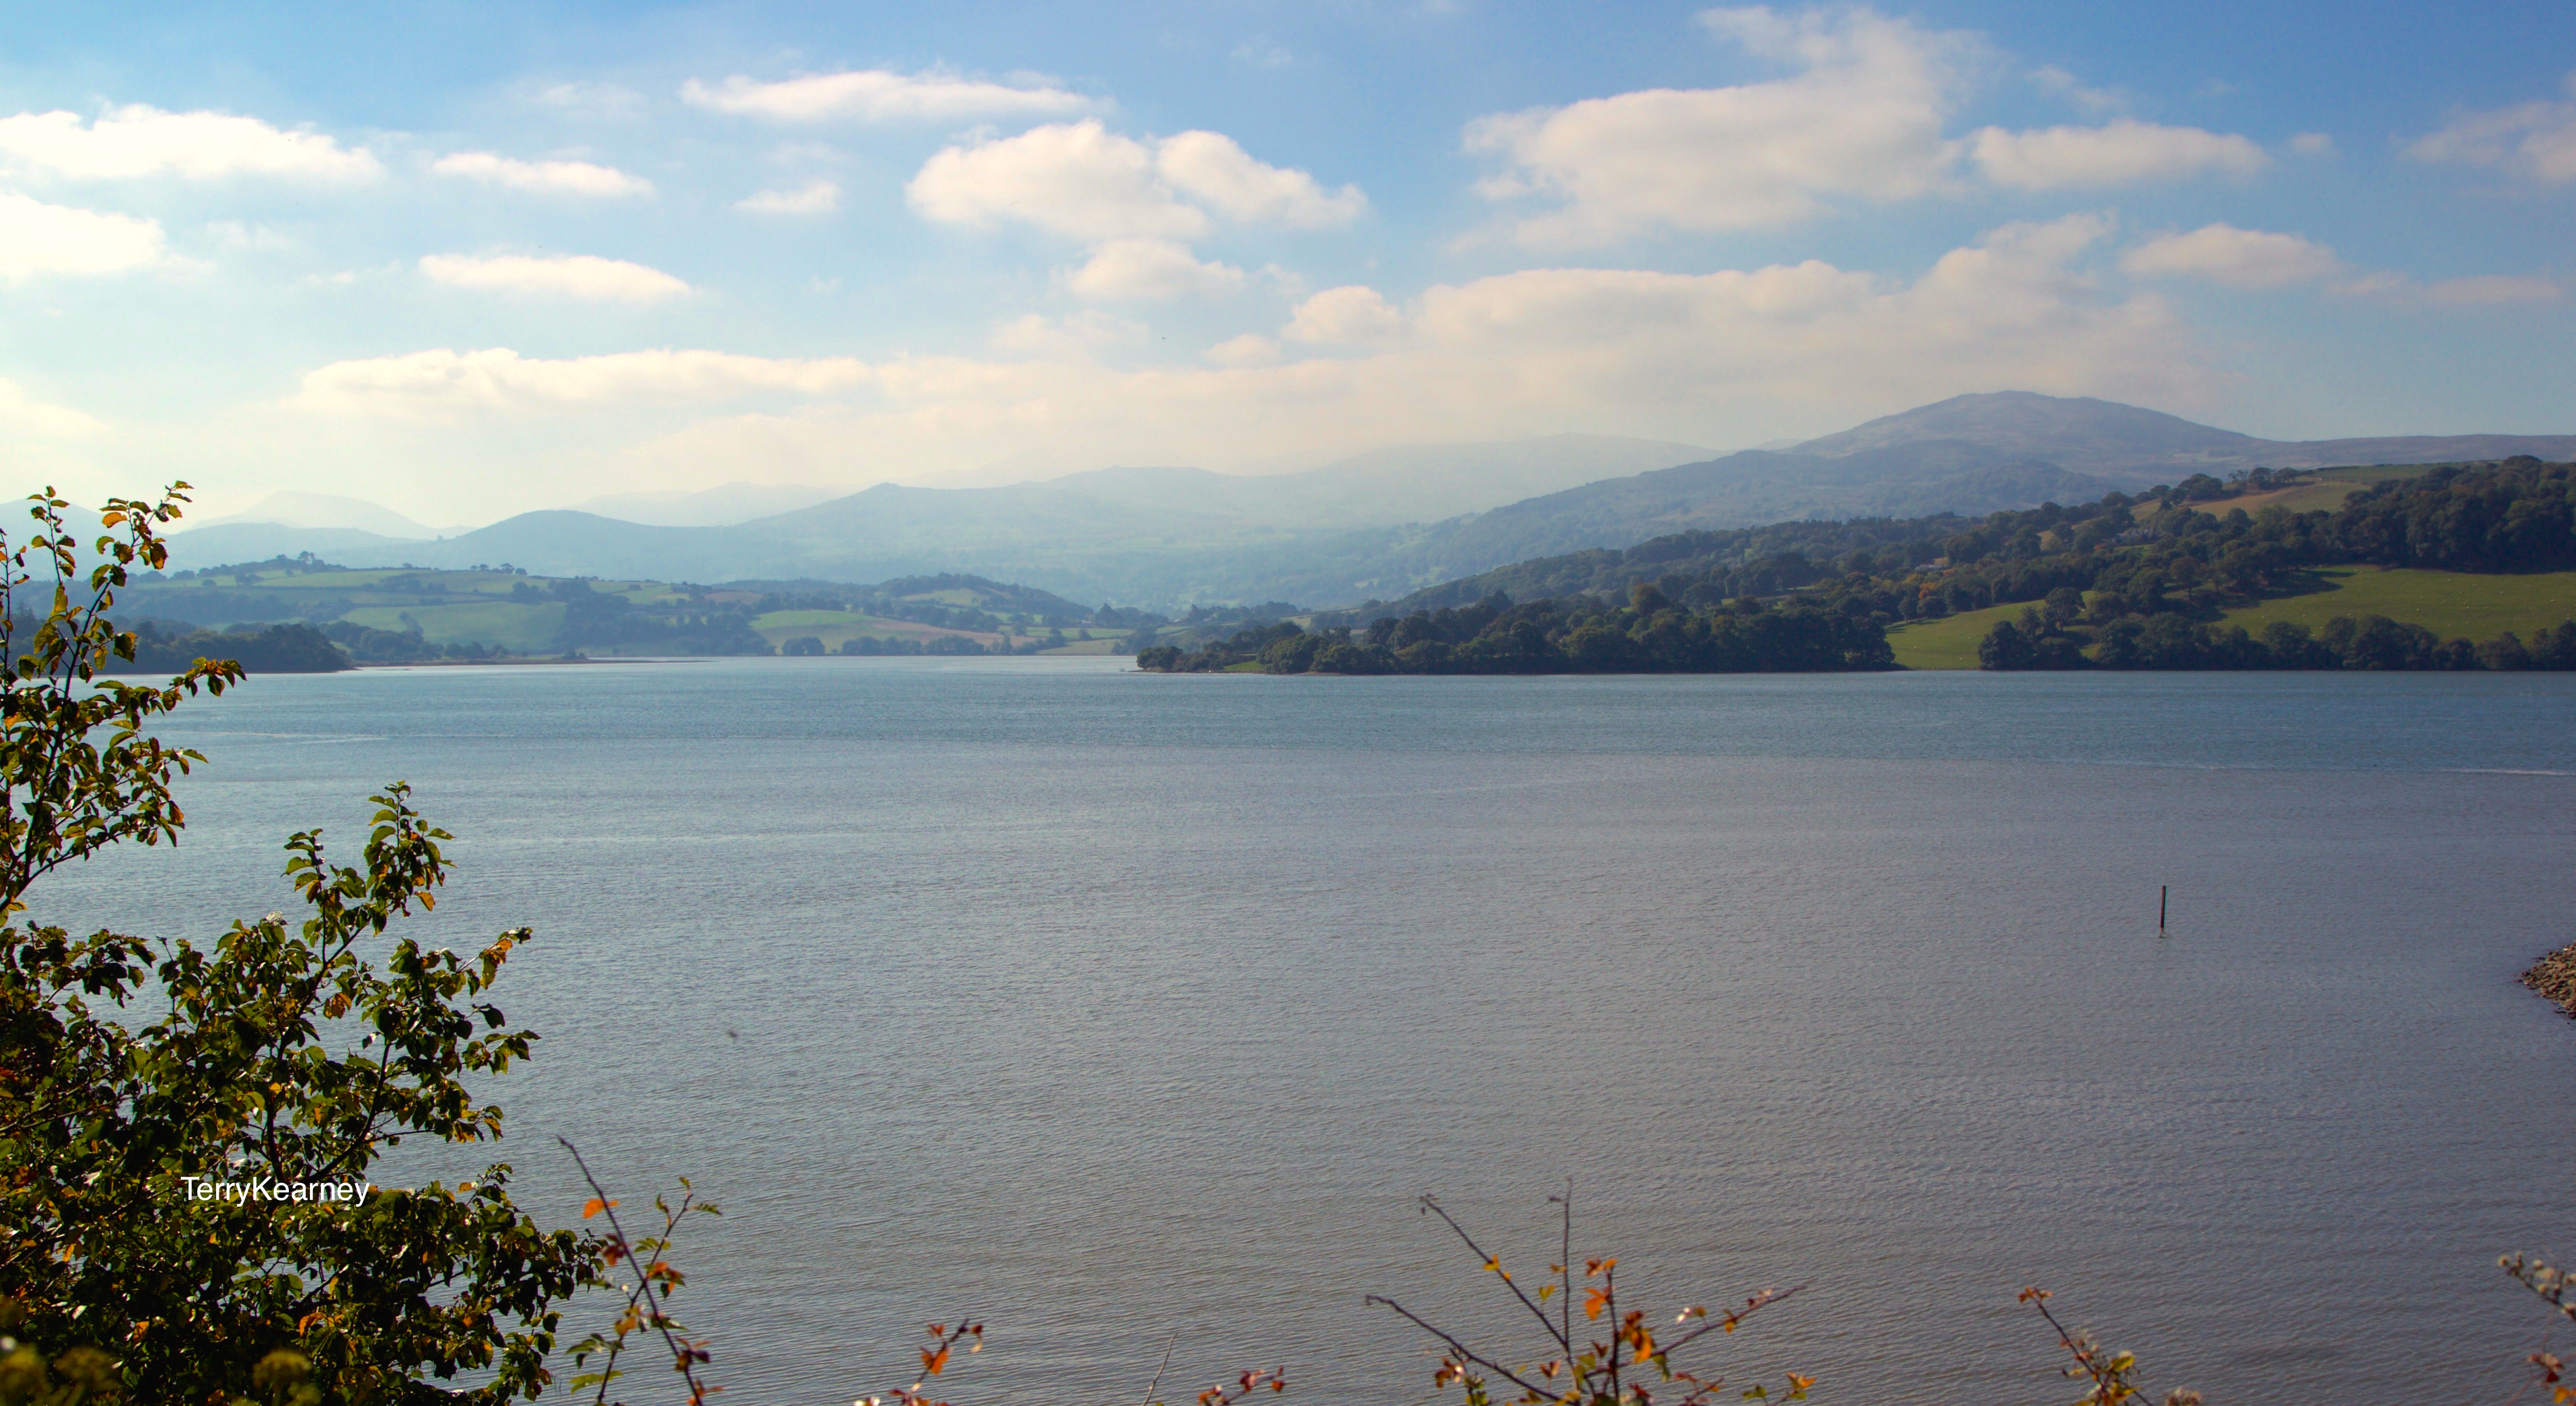 River Conwy in Wales, 2015, Skyline, Outdoor, Parks, HQ Photo